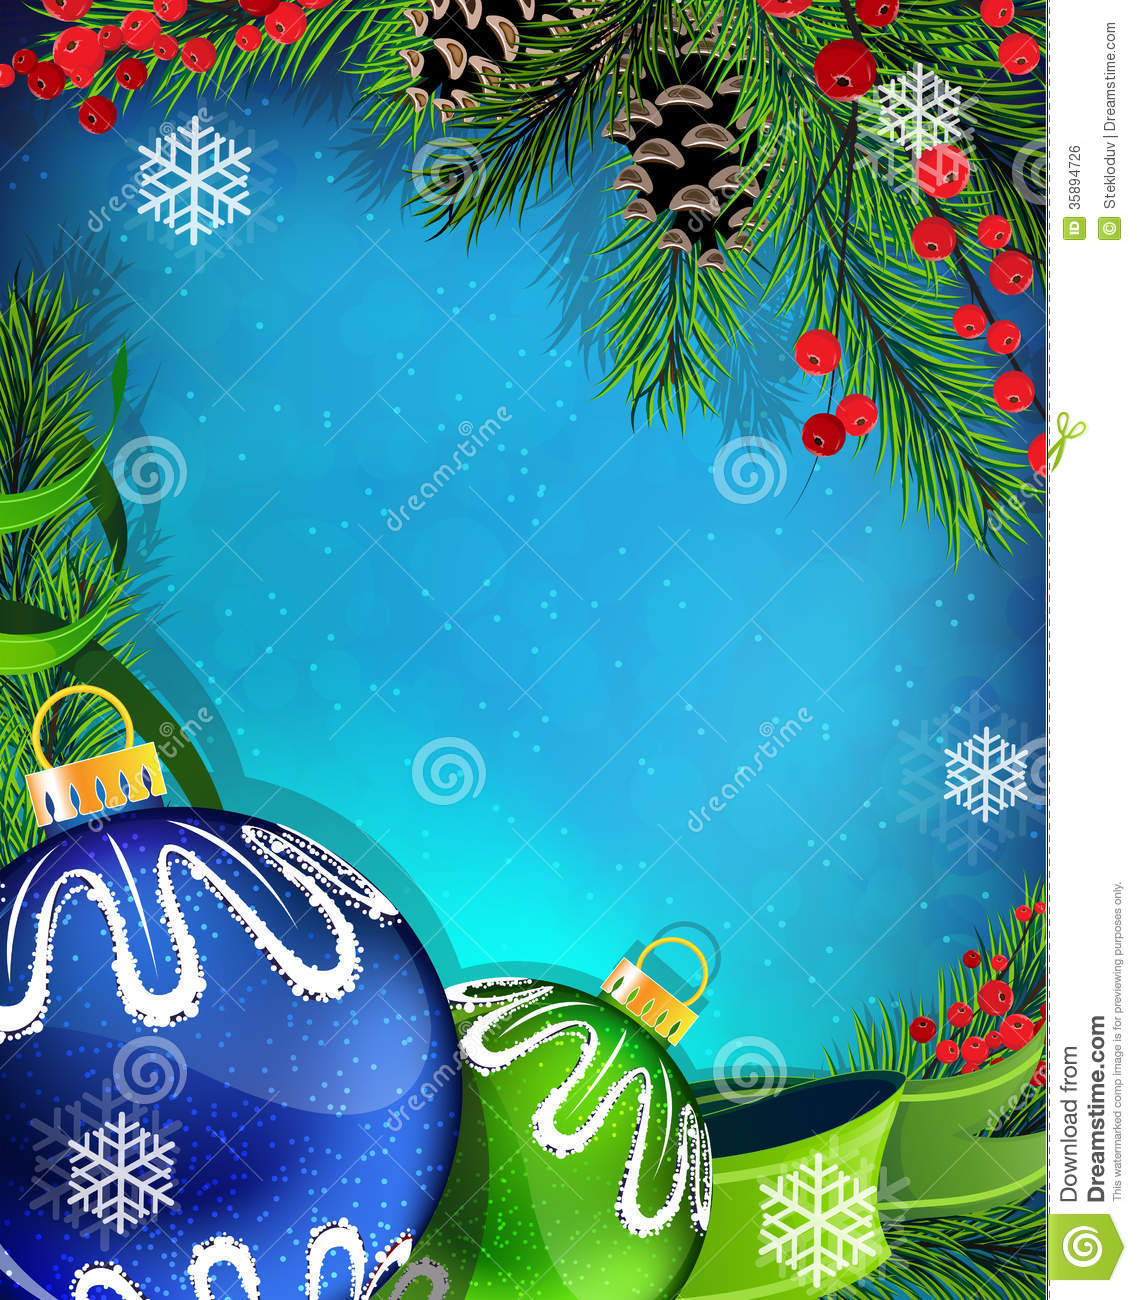 Blue And Green Christmas Tree: Blue And Green Christmas Ornaments With Ribbon On Stock